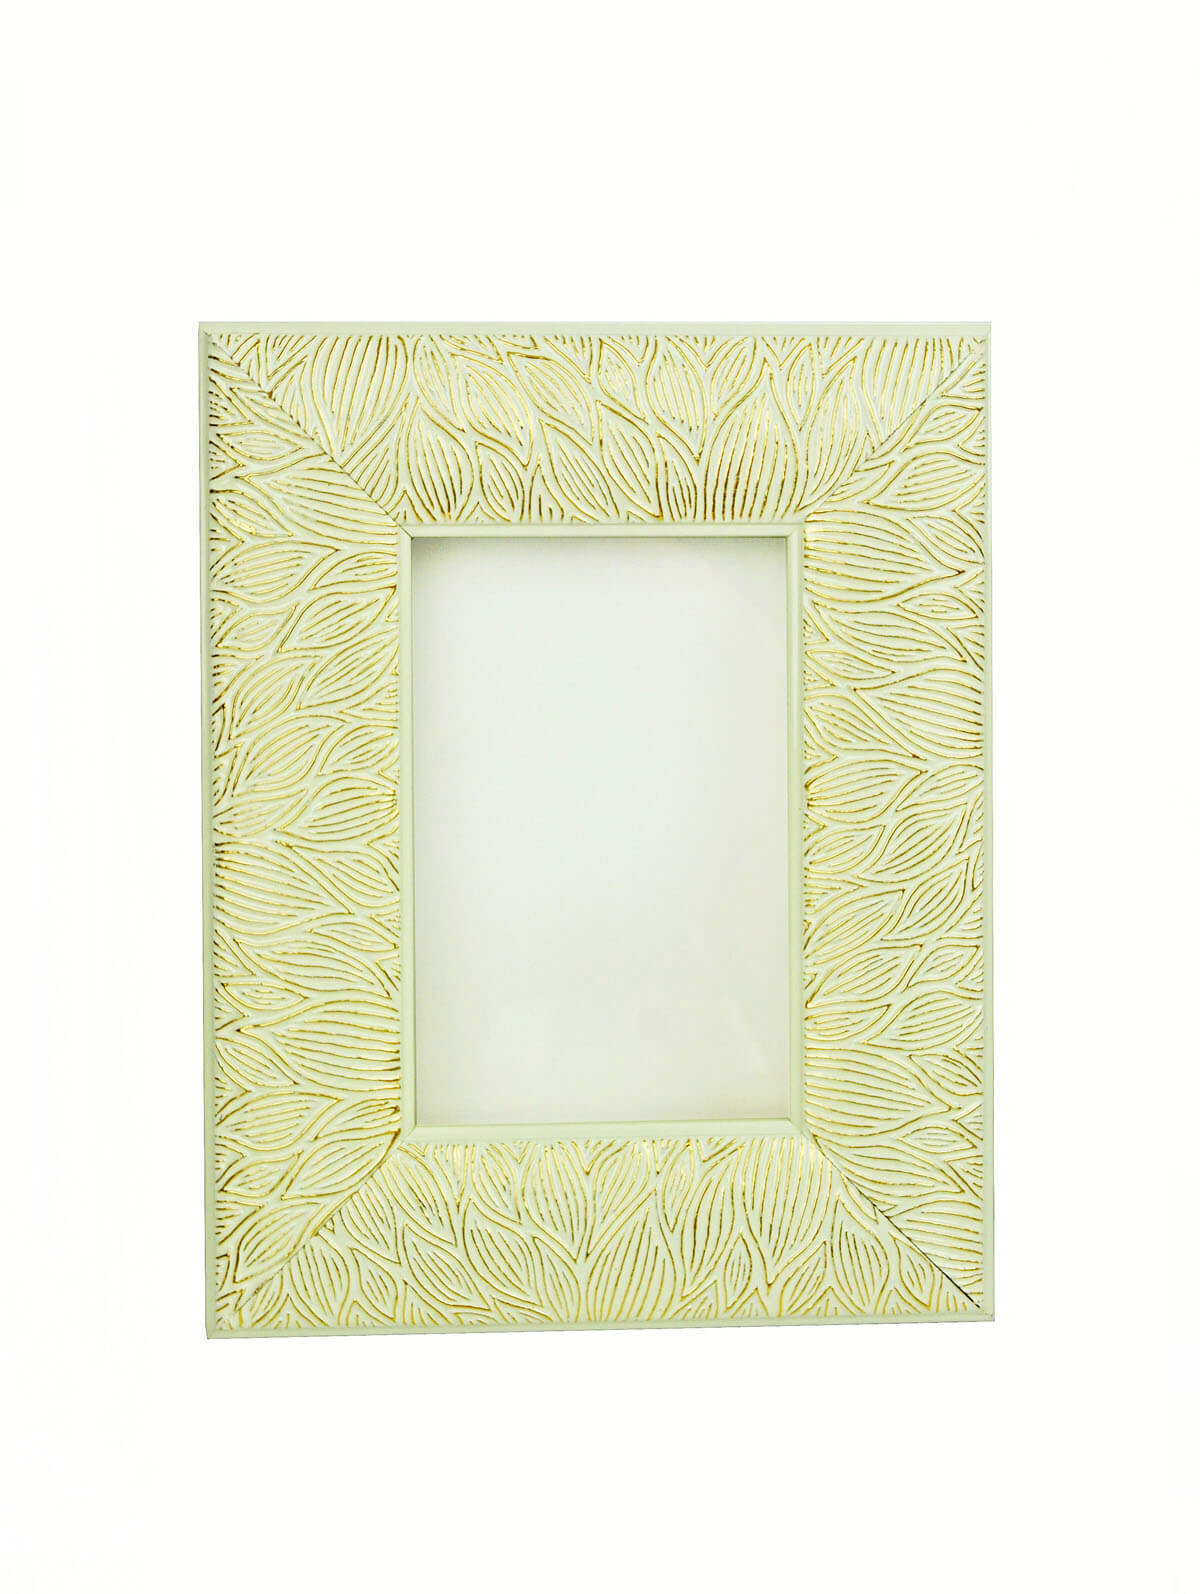 Framed Glass For Table Numbers Cream And Gold 4 Quot X 6 Quot Set